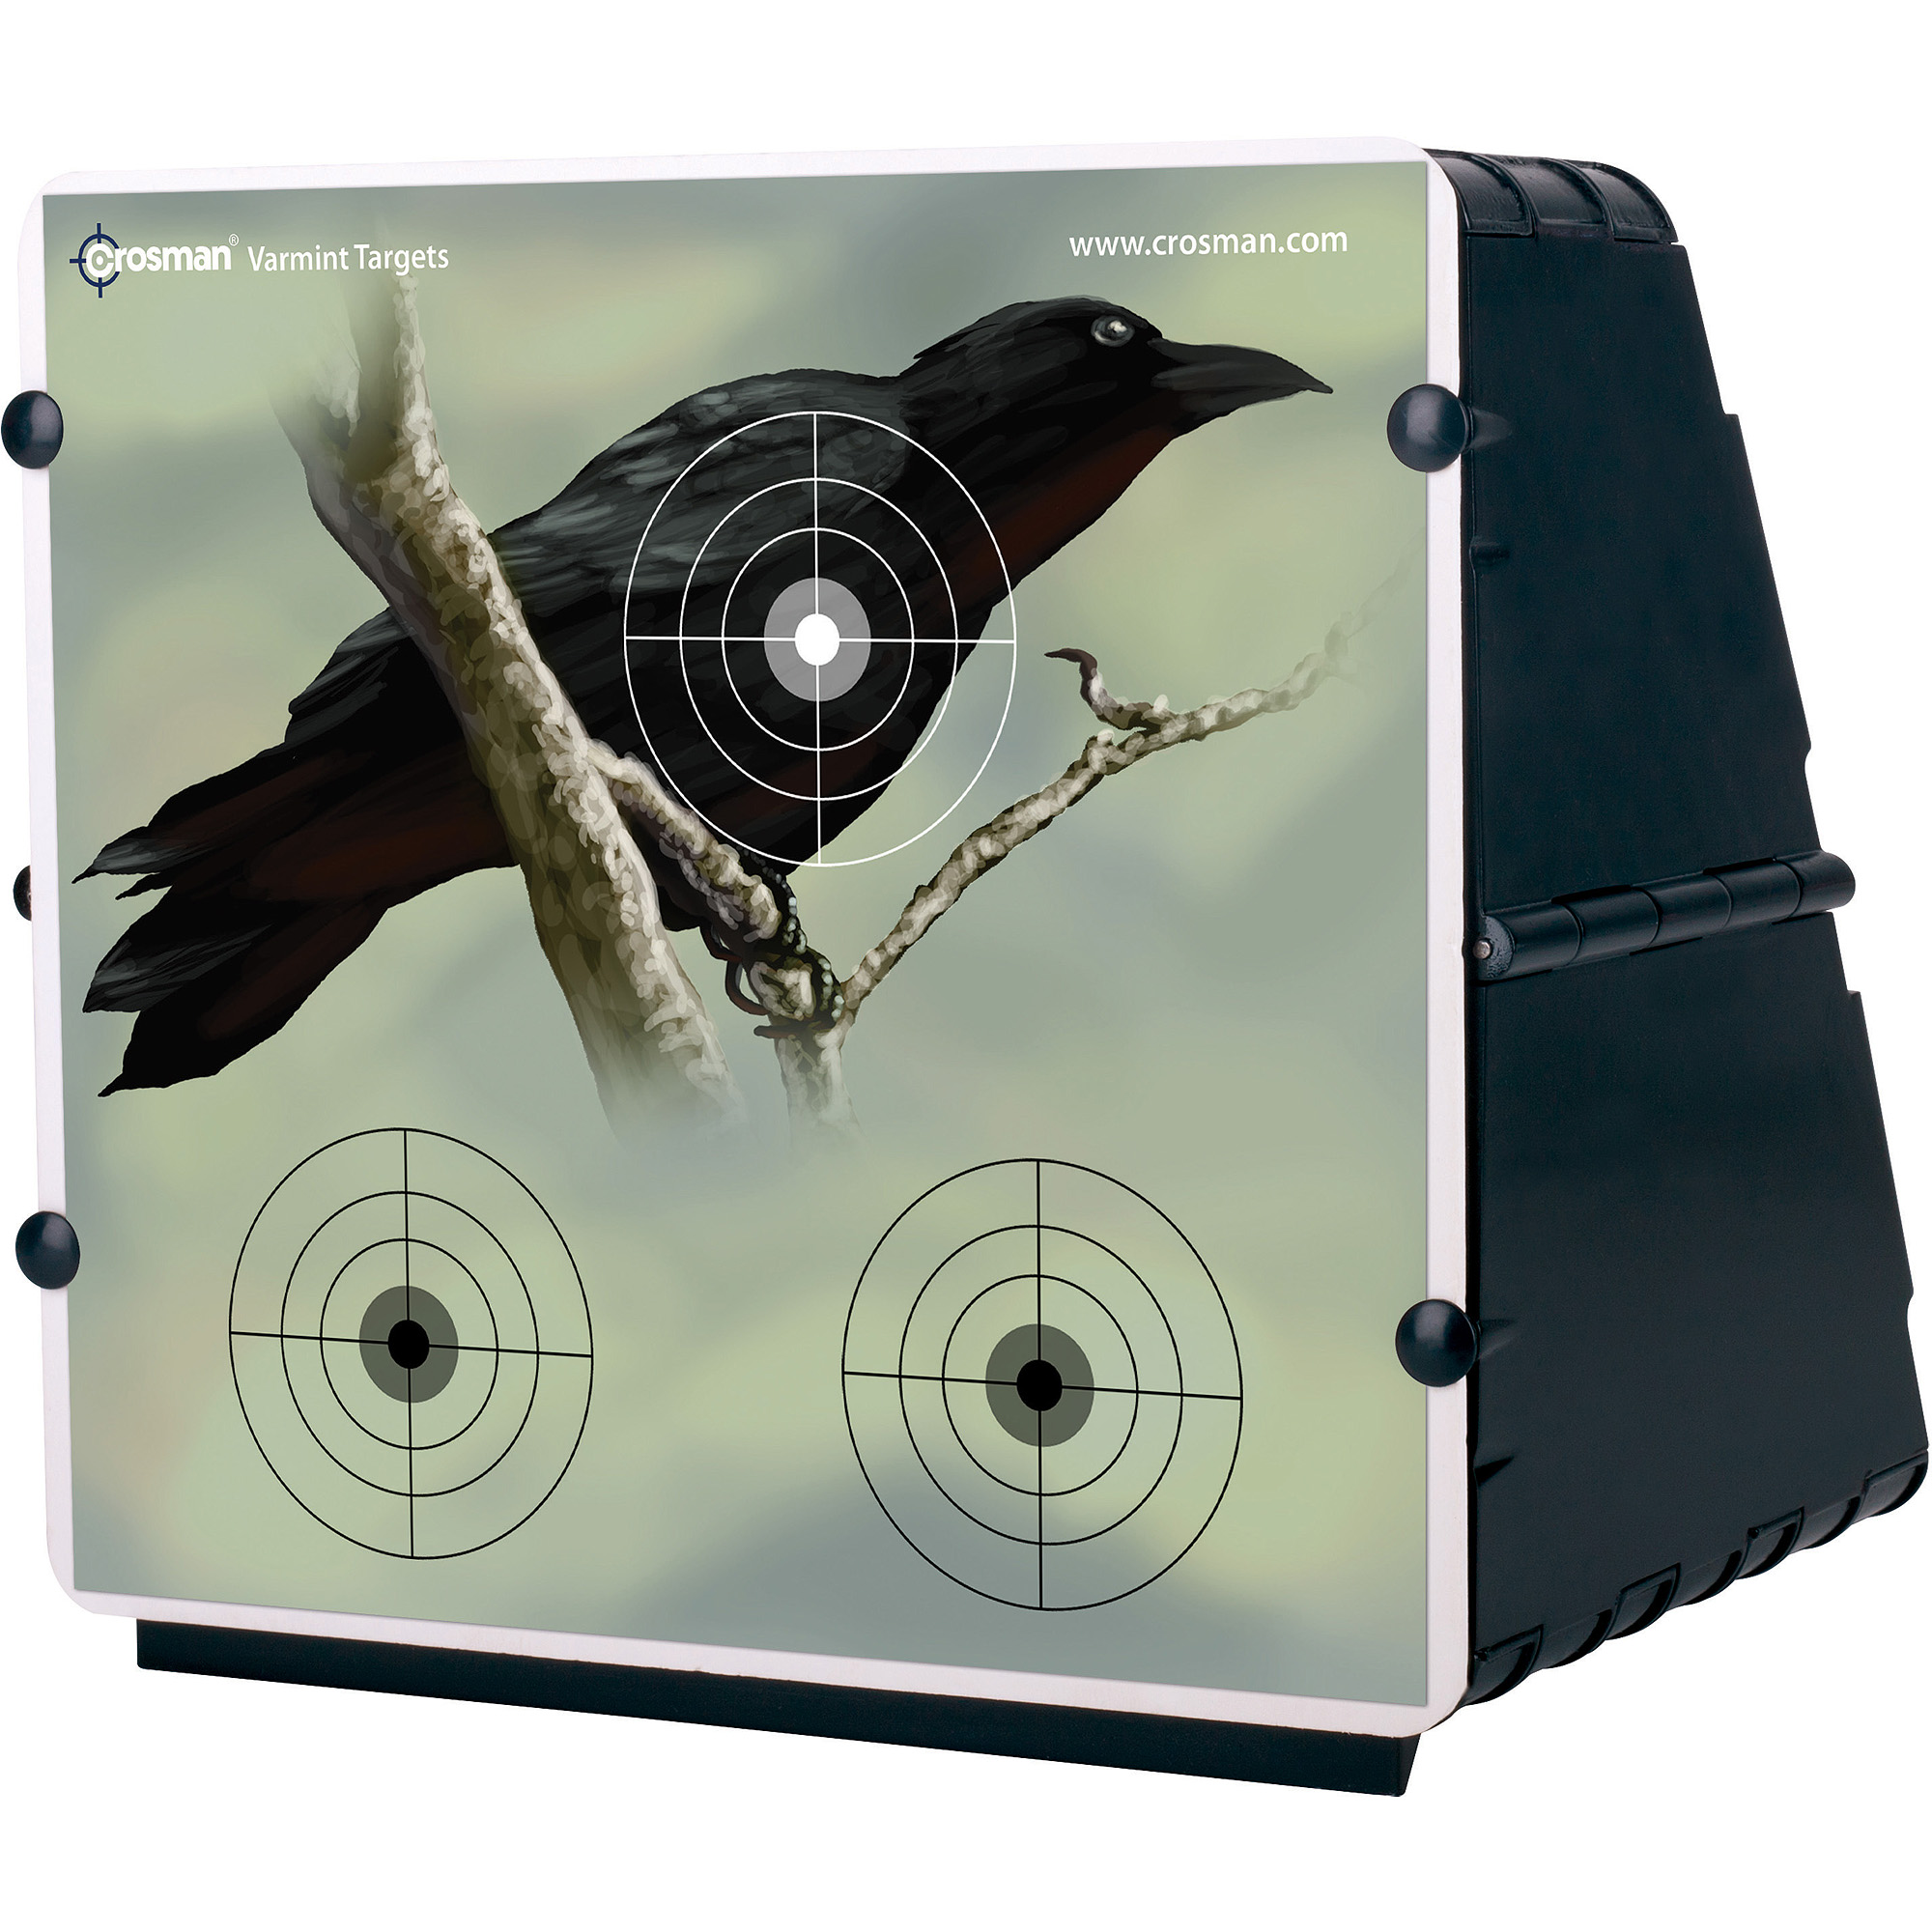 Crosman Indoor/Outdoor Air Rifle Shooting Target Trap